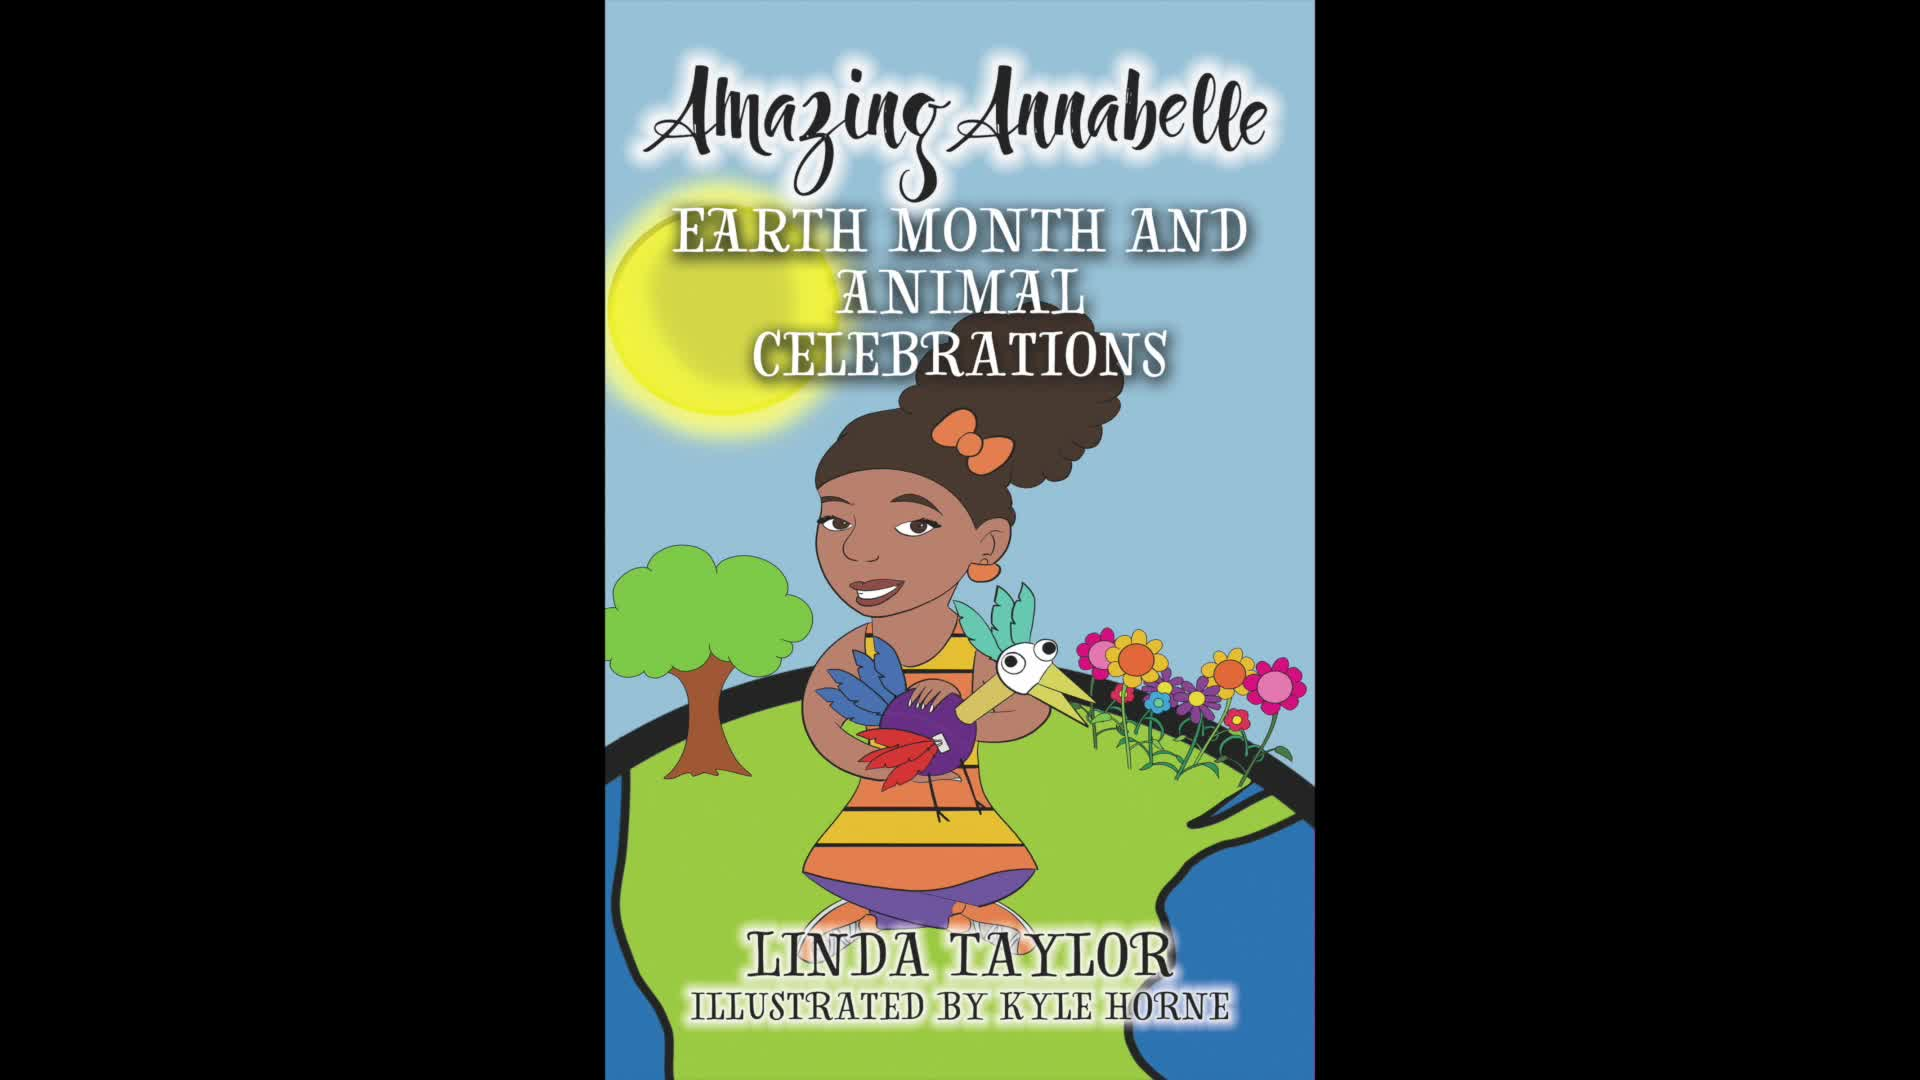 Amazing Annabelle Earth Month And Animal Celebrations Chapter 5